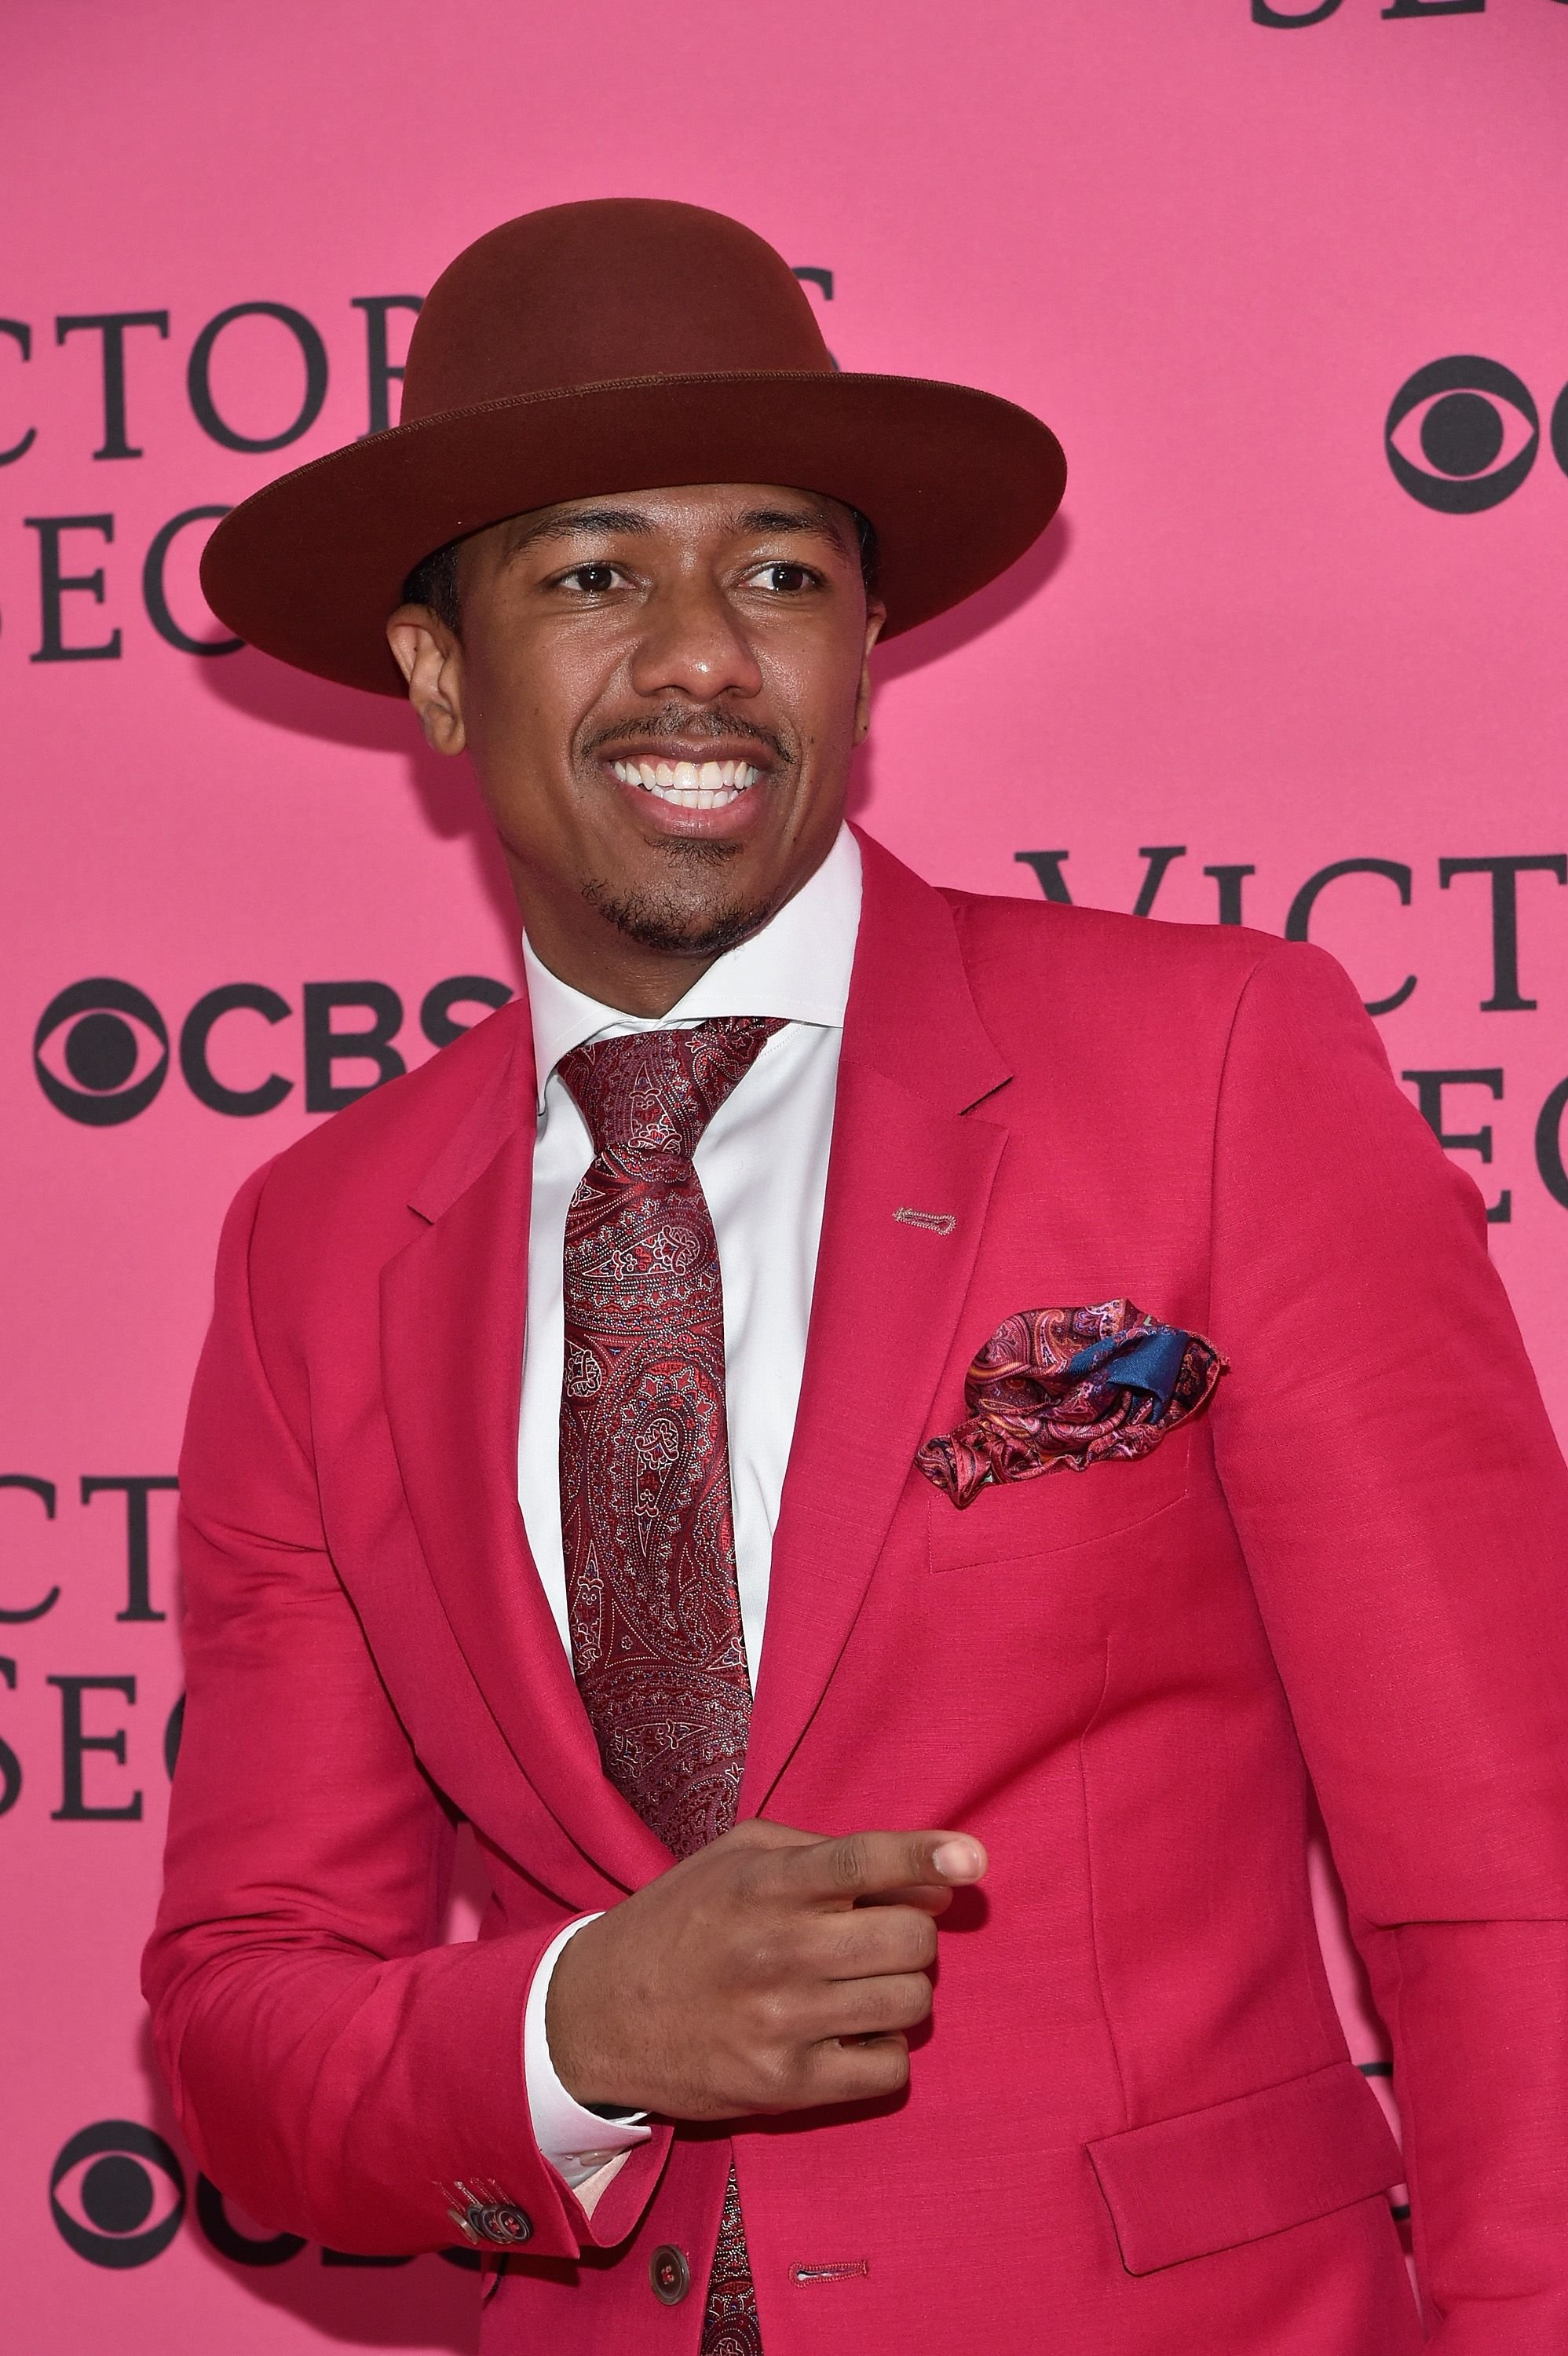 Nick Cannon during the 2015 Victoria's Secret Fashion Show at Lexington Avenue Armory on November 10, 2015 in New York City.   Source: Getty Images